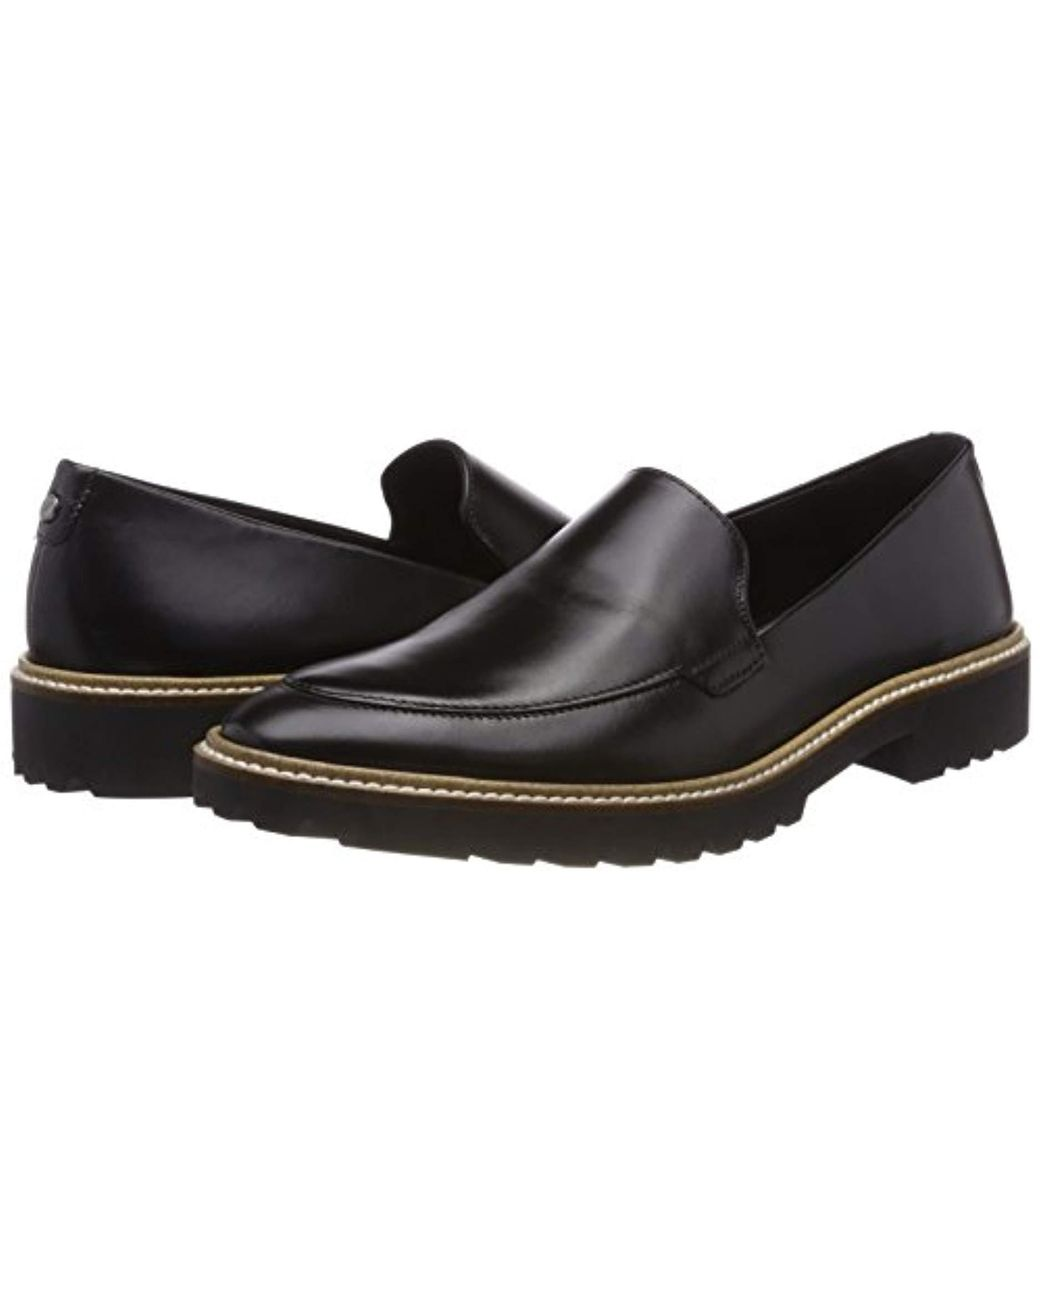 3c962e15 Women's Black Incise Tailored Loafers